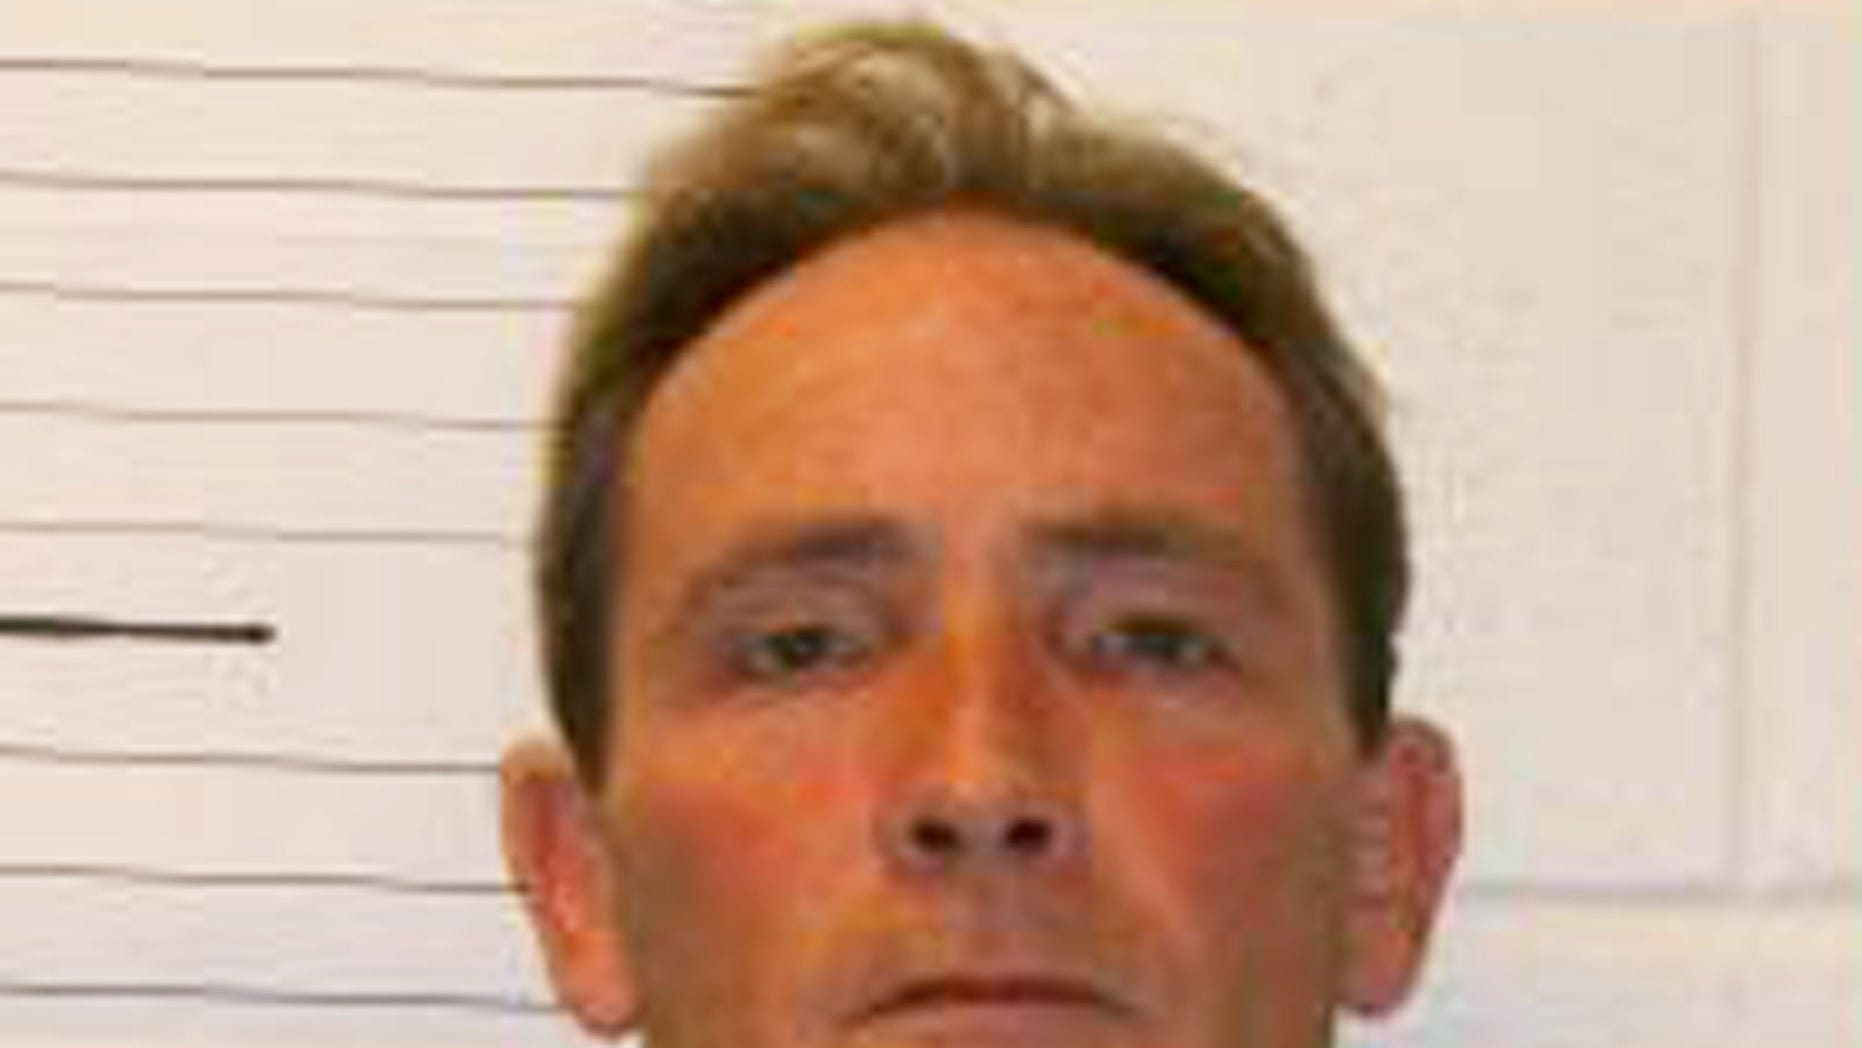 Feb. 10, 2015: In this Jan. 1, 2012 photo provided by the Missouri Department of Corrections is Walter Storey of St. Charles, Mo., who faces the death penalty for killing Jill Frey in 1990.